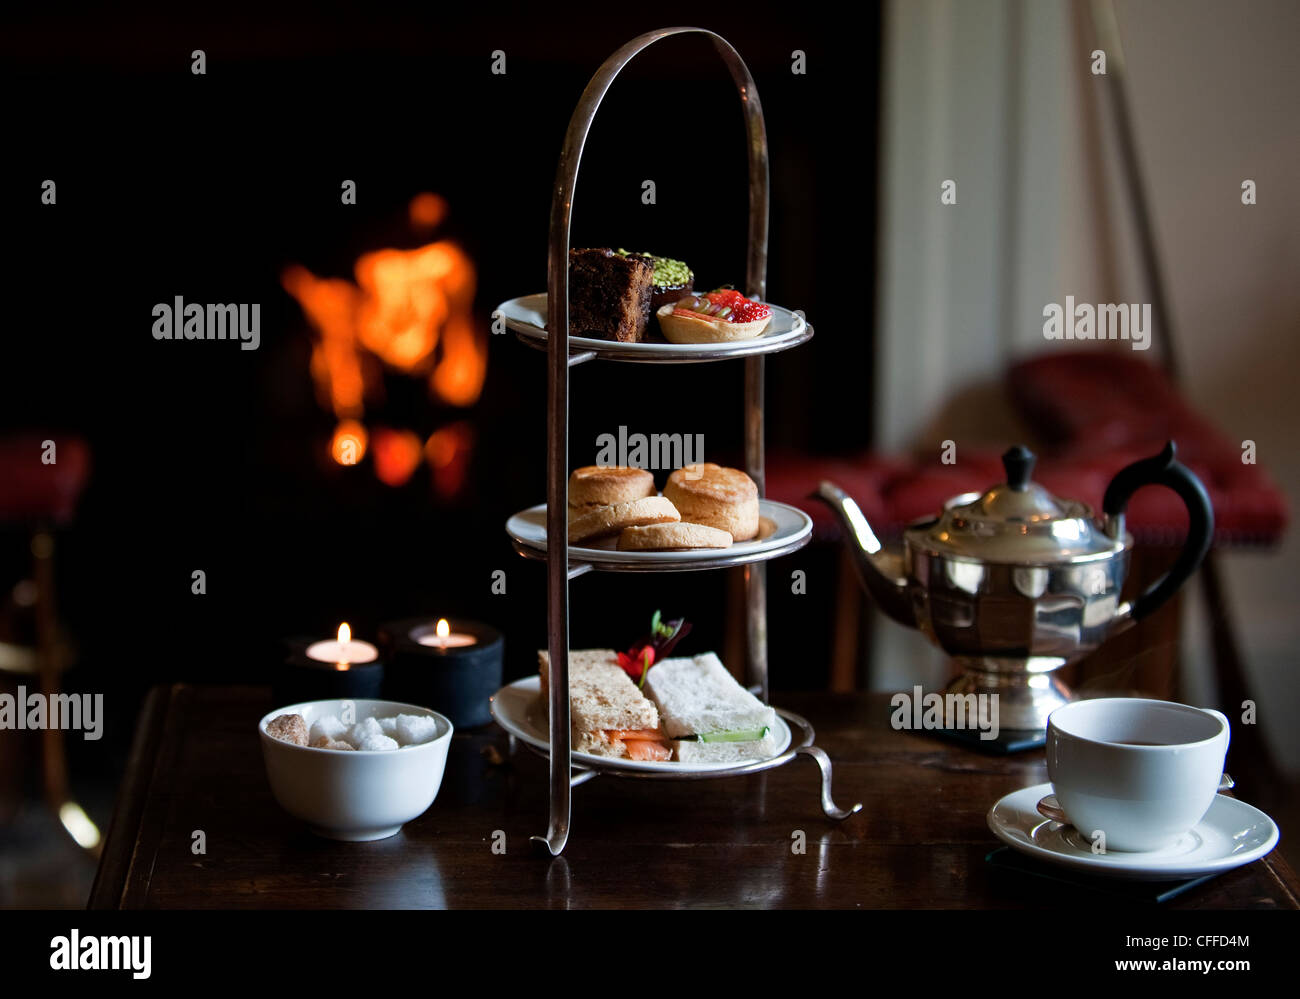 Afternoon tea at Kinloch Lodge on Isle Of Skye - Stock Image